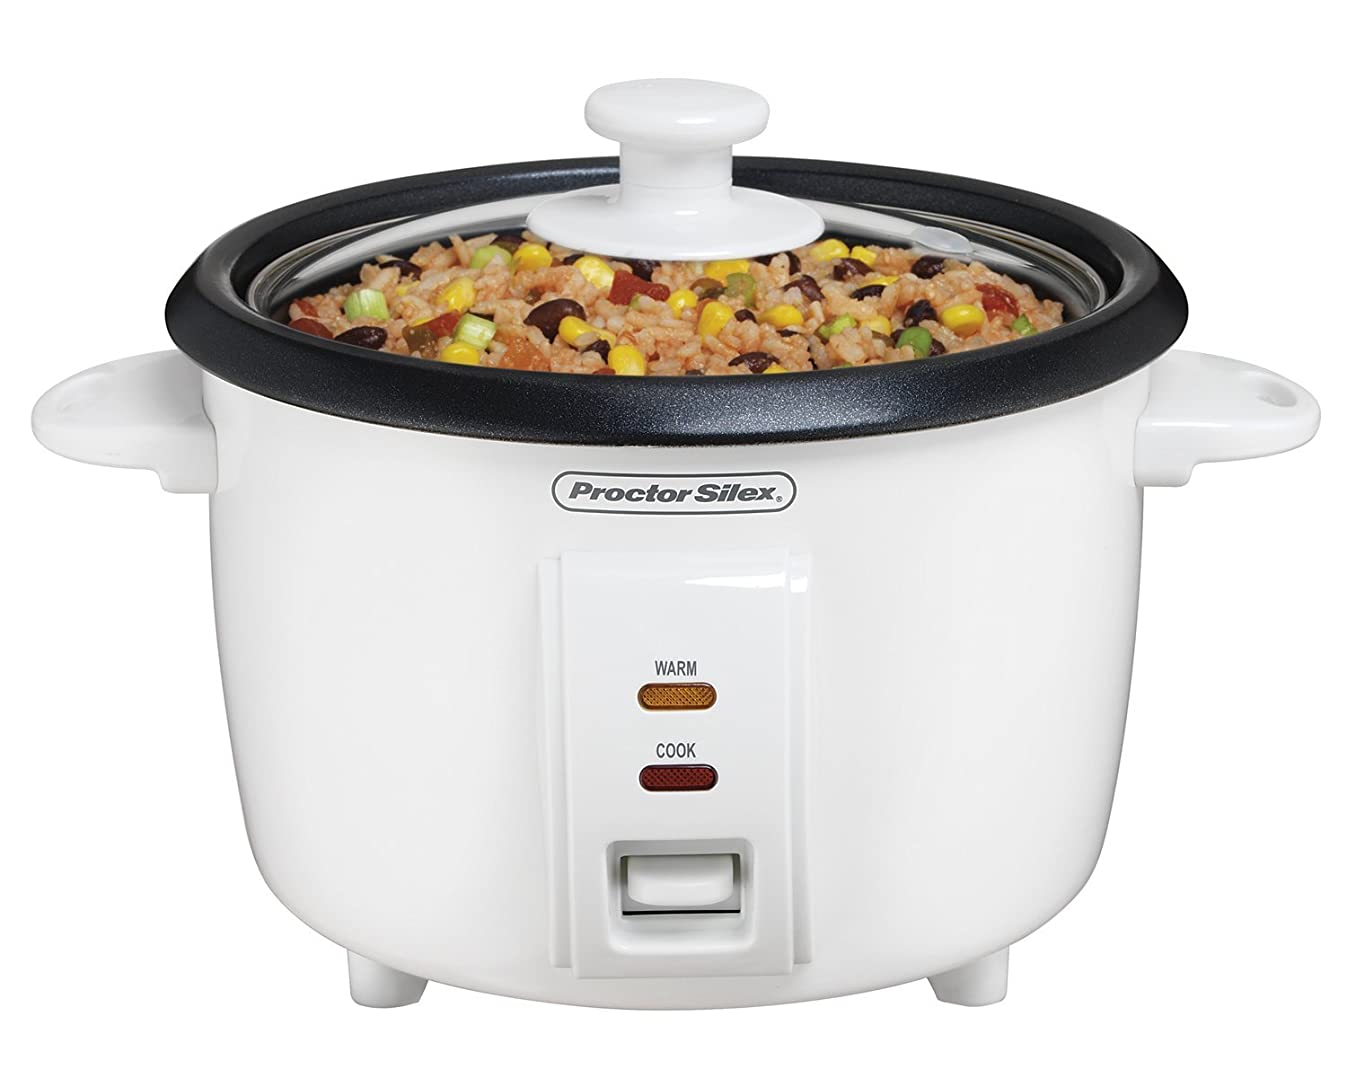 Proctor Silex 37534NR Rice Cooker, 8 Cups Cooked, White